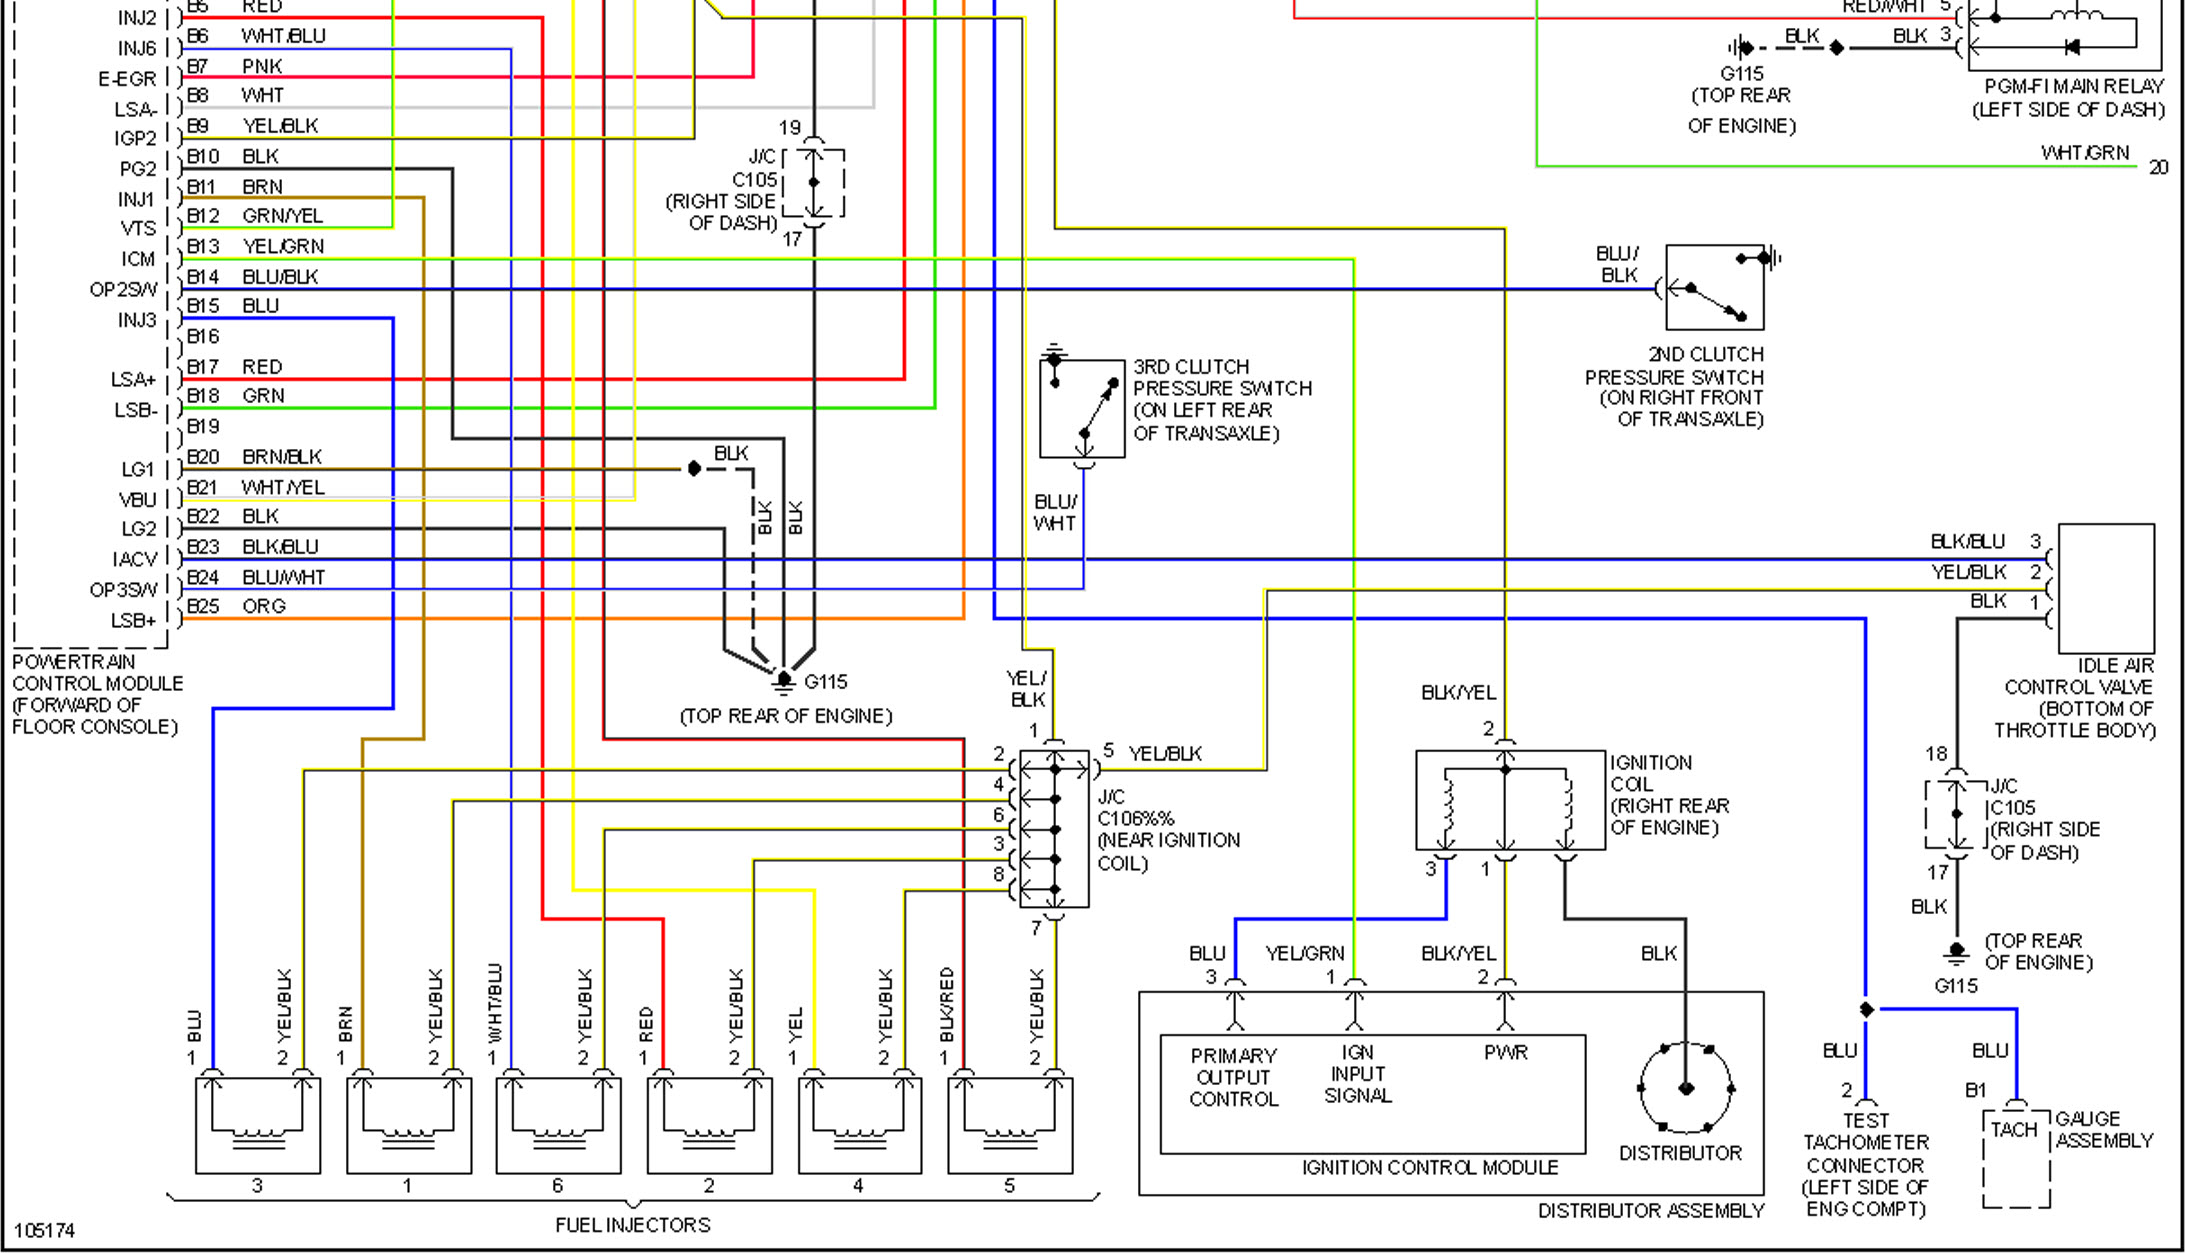 1996 Honda Accord Stereo Wiring Diagram from www.2carpros.com